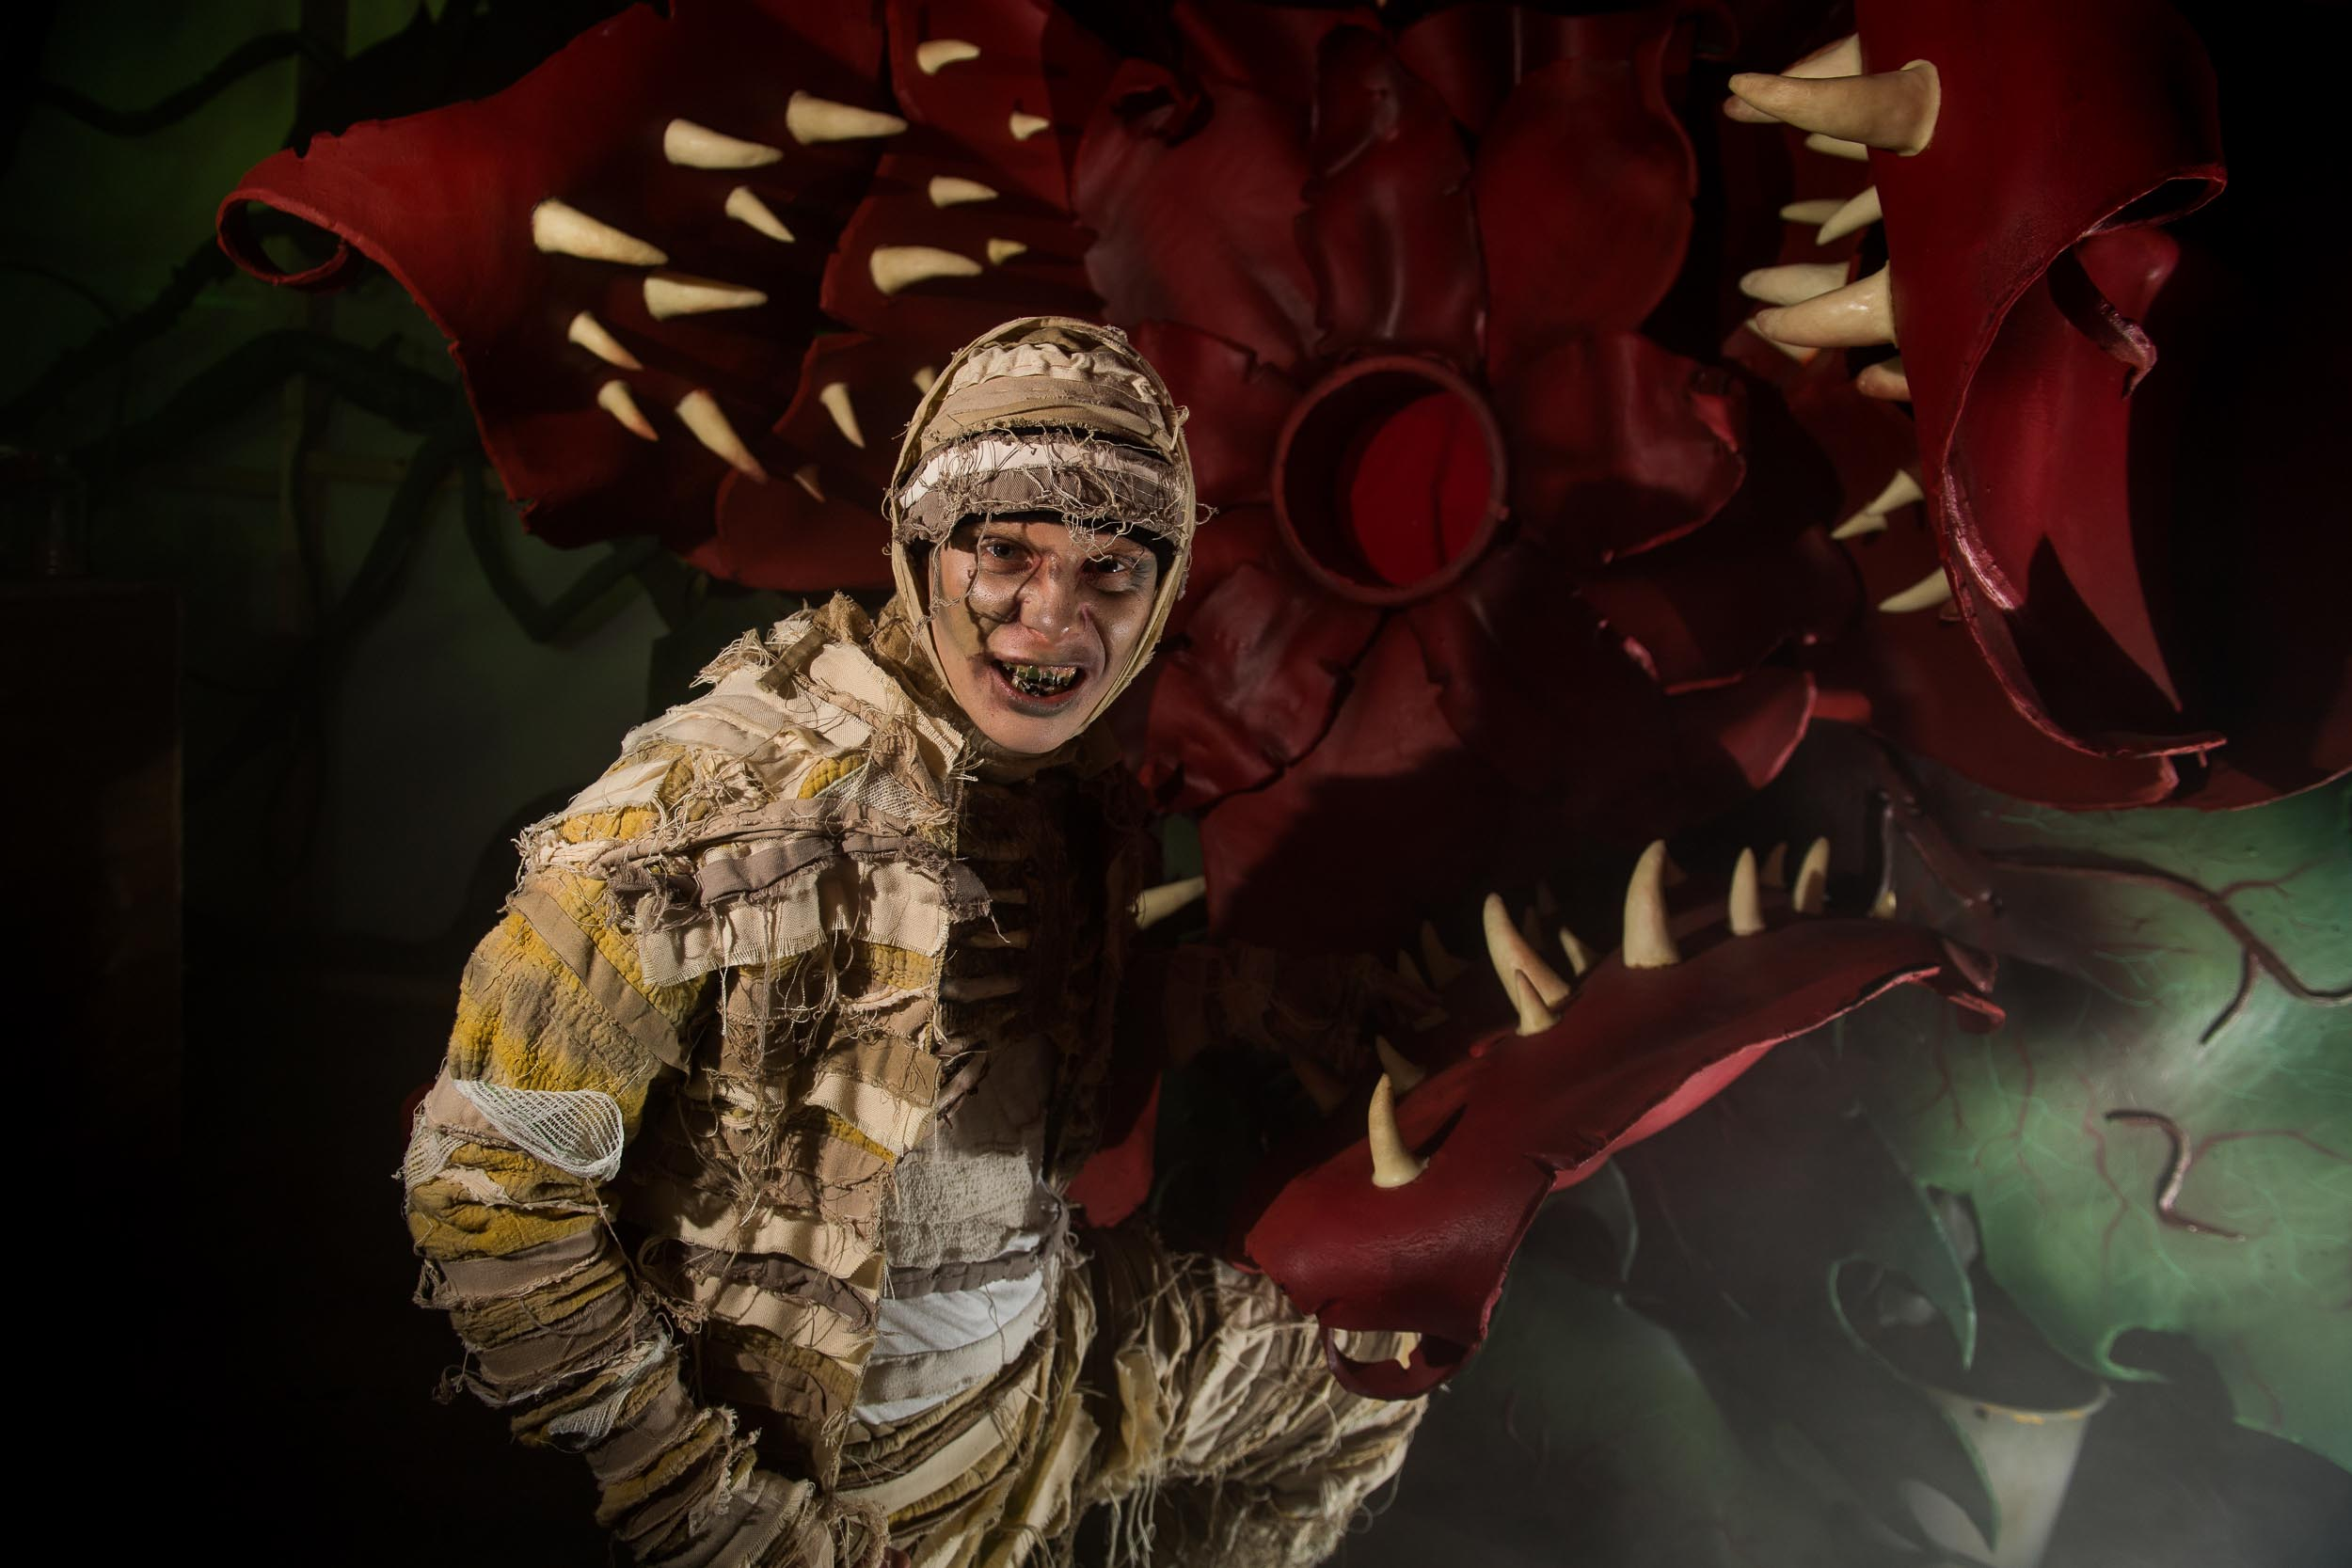 Event Photography at Alton Towers Scarefest Halloween by Manchester Photographer